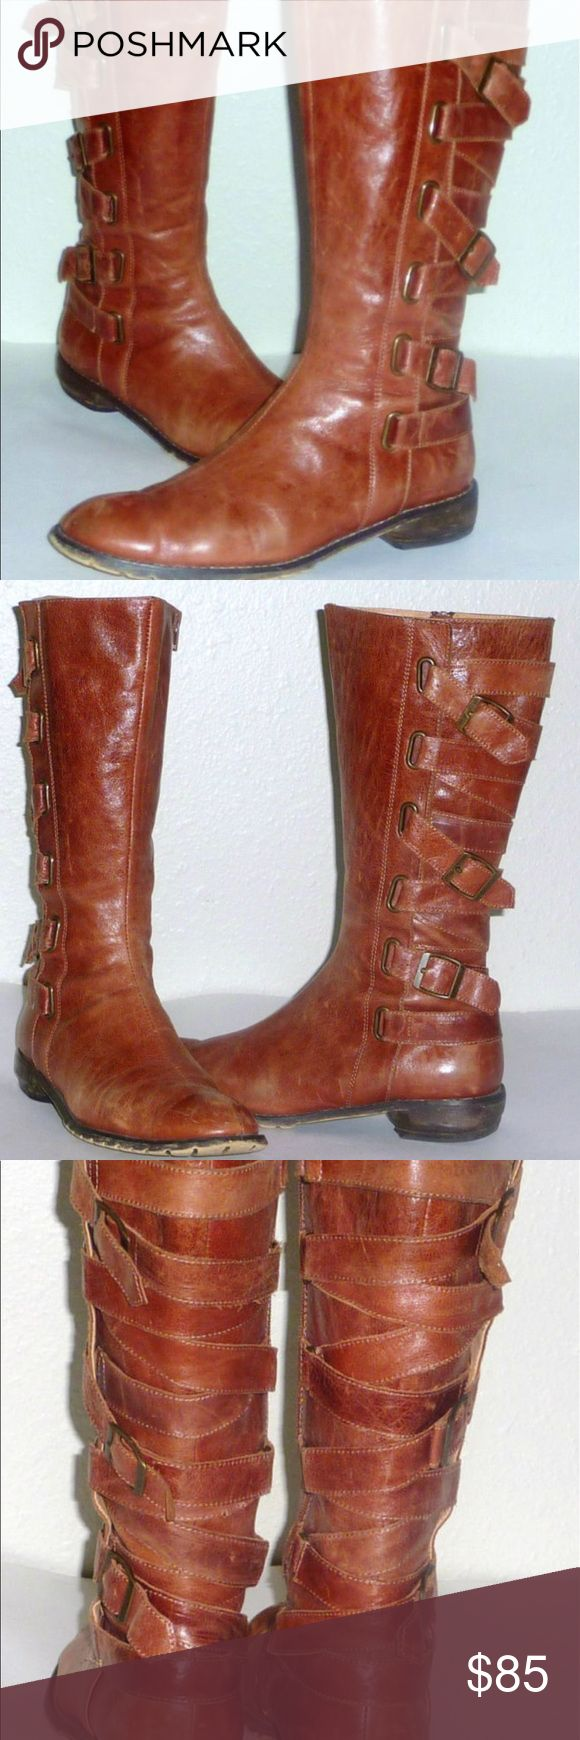 Seychelles Buckle Strappy Distressed Leather Boots Seychelles Buckle Wrap Distressed Leather Boots. In good condition. Seychelles Shoes Lace Up Boots